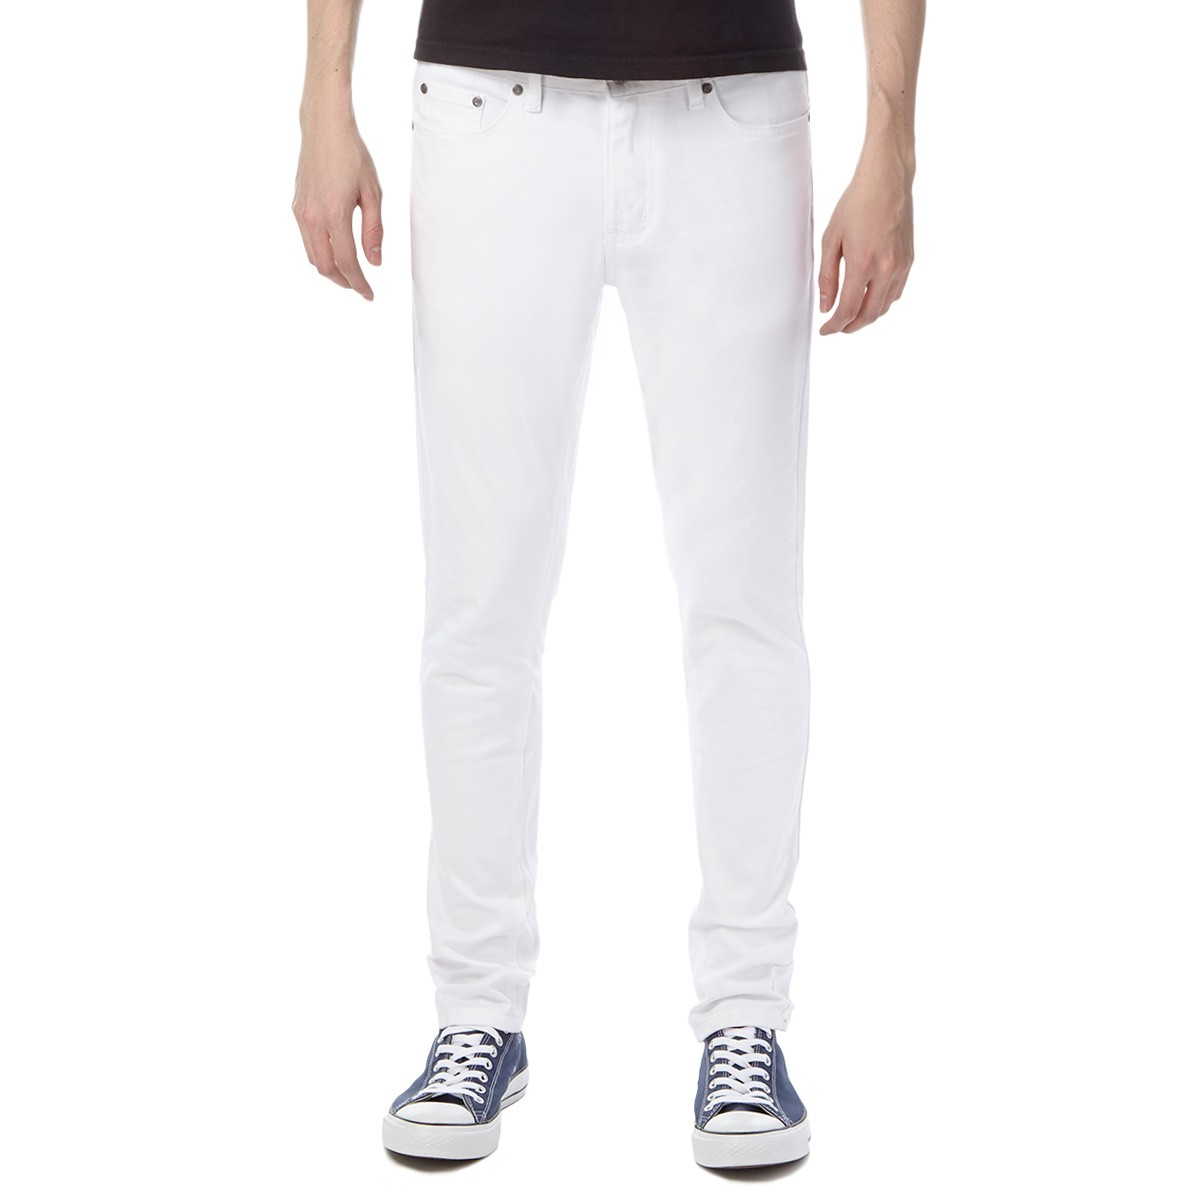 Banks OG Skinny Jeans - White Distressed